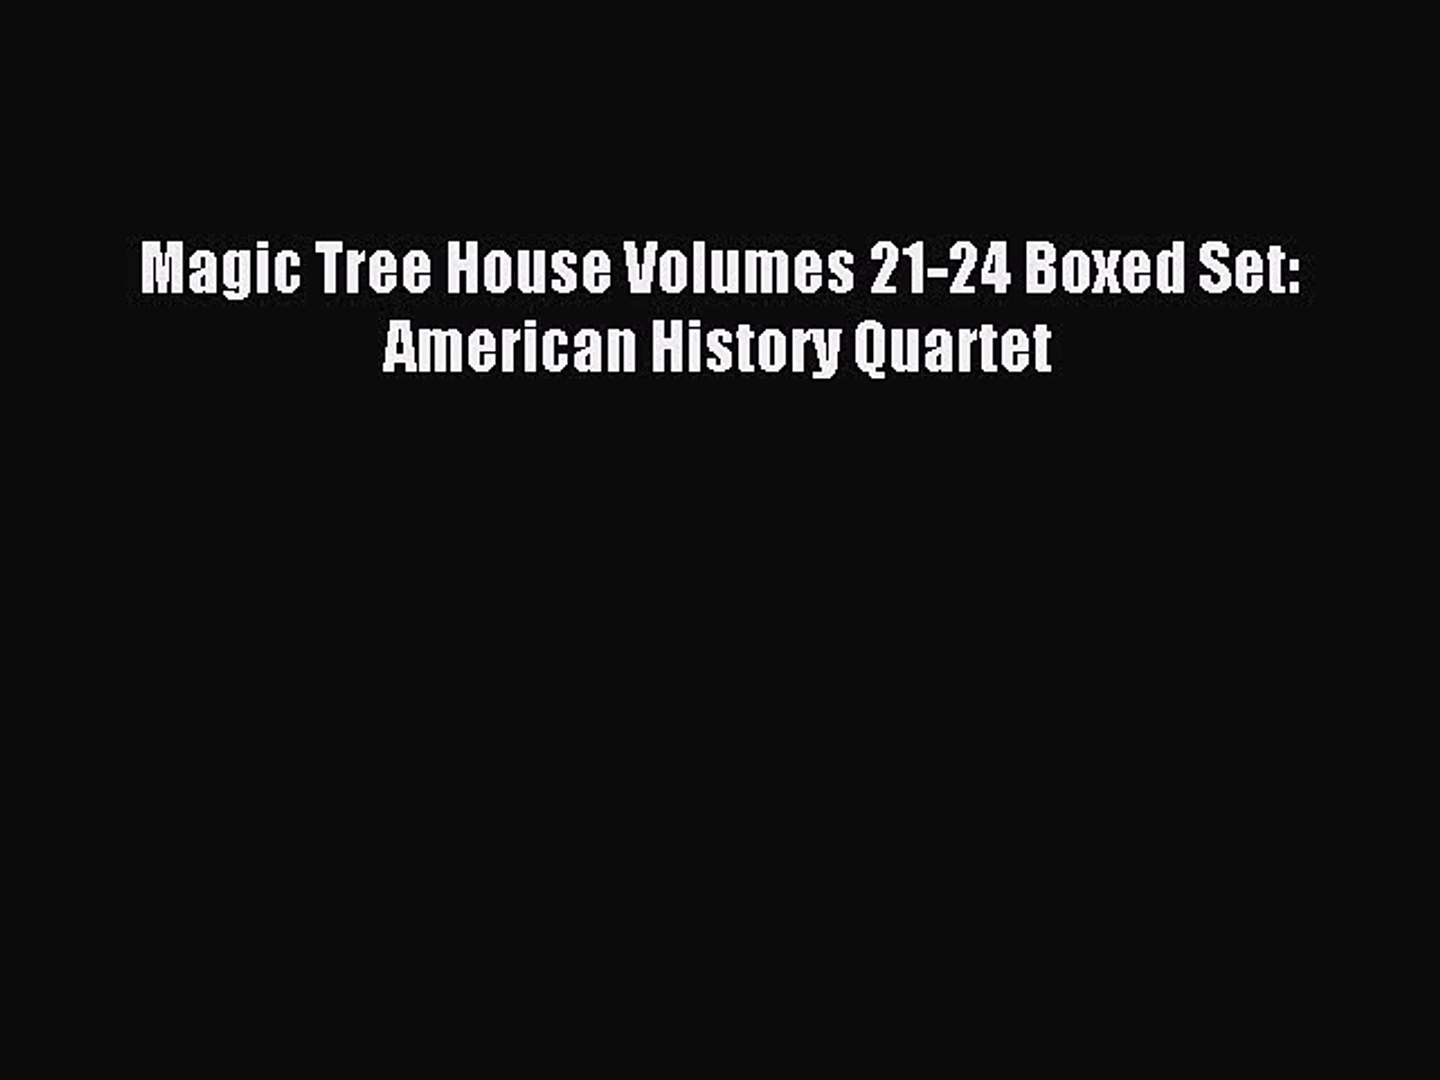 Read Magic Tree House Volumes 21-24 Boxed Set: American History Quartet PDF Free